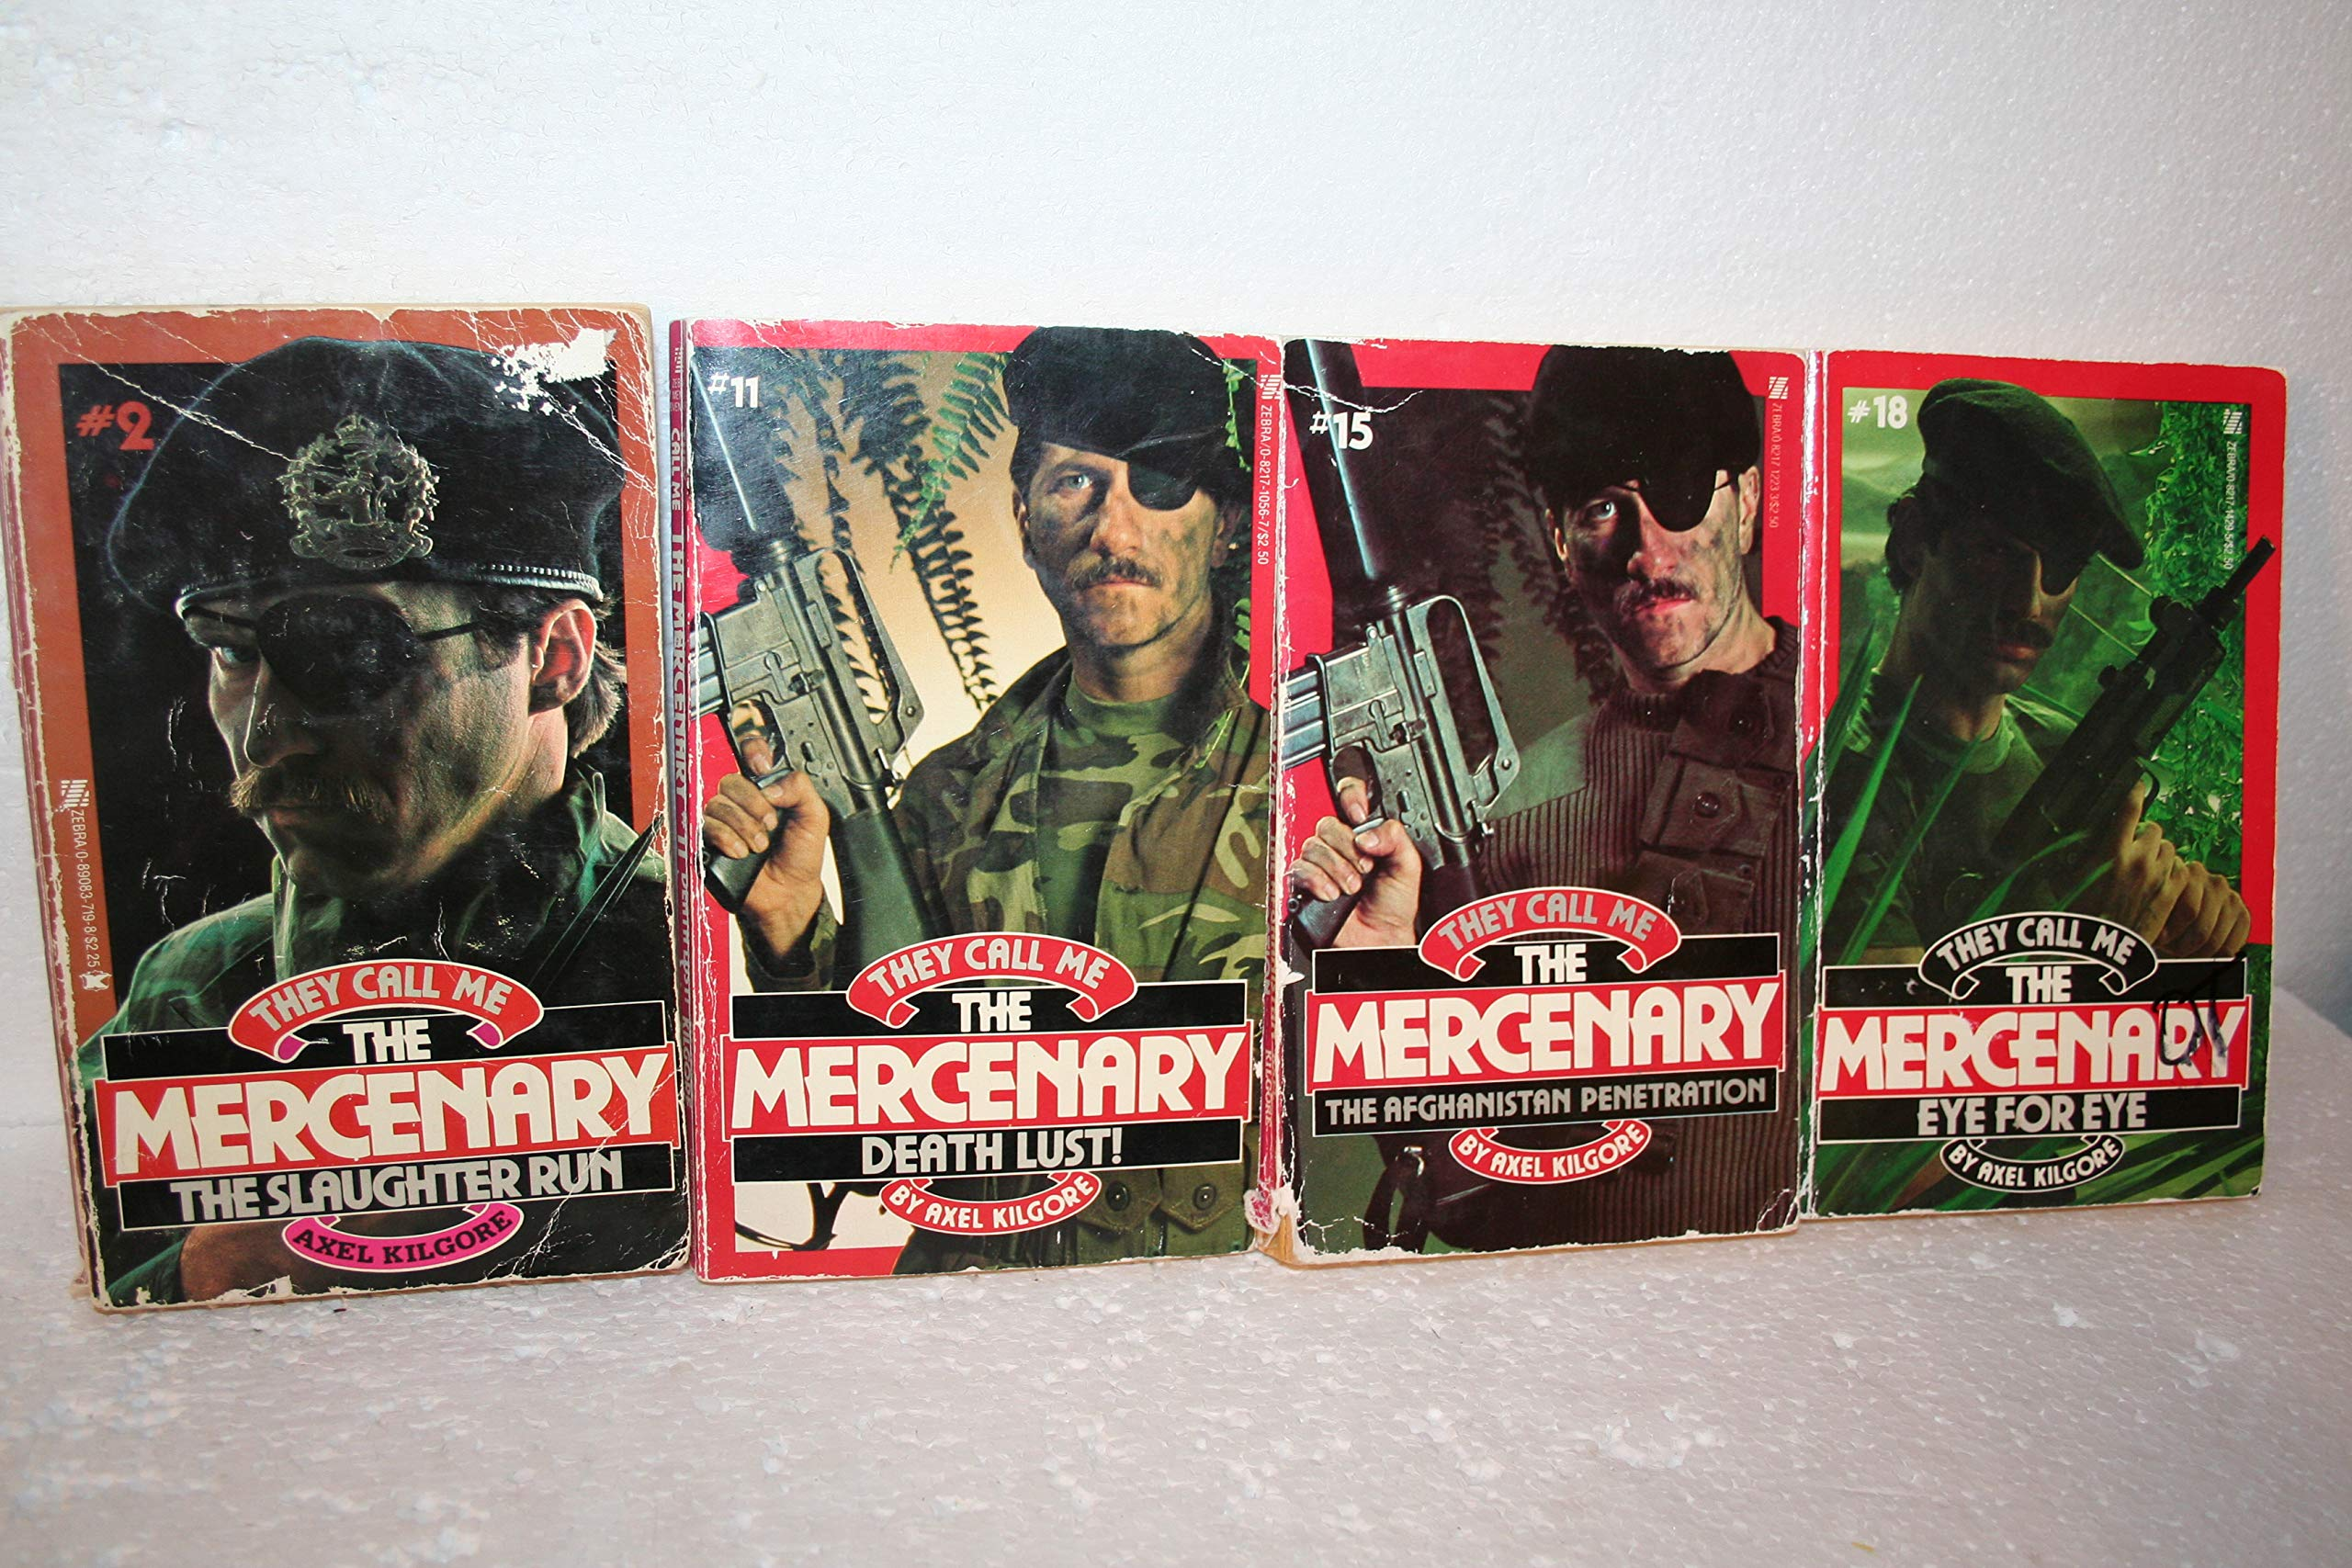 They Call Me the Mercenary# 2, 11, 15 & 18: Axel Kilgore: Amazon.com: Books